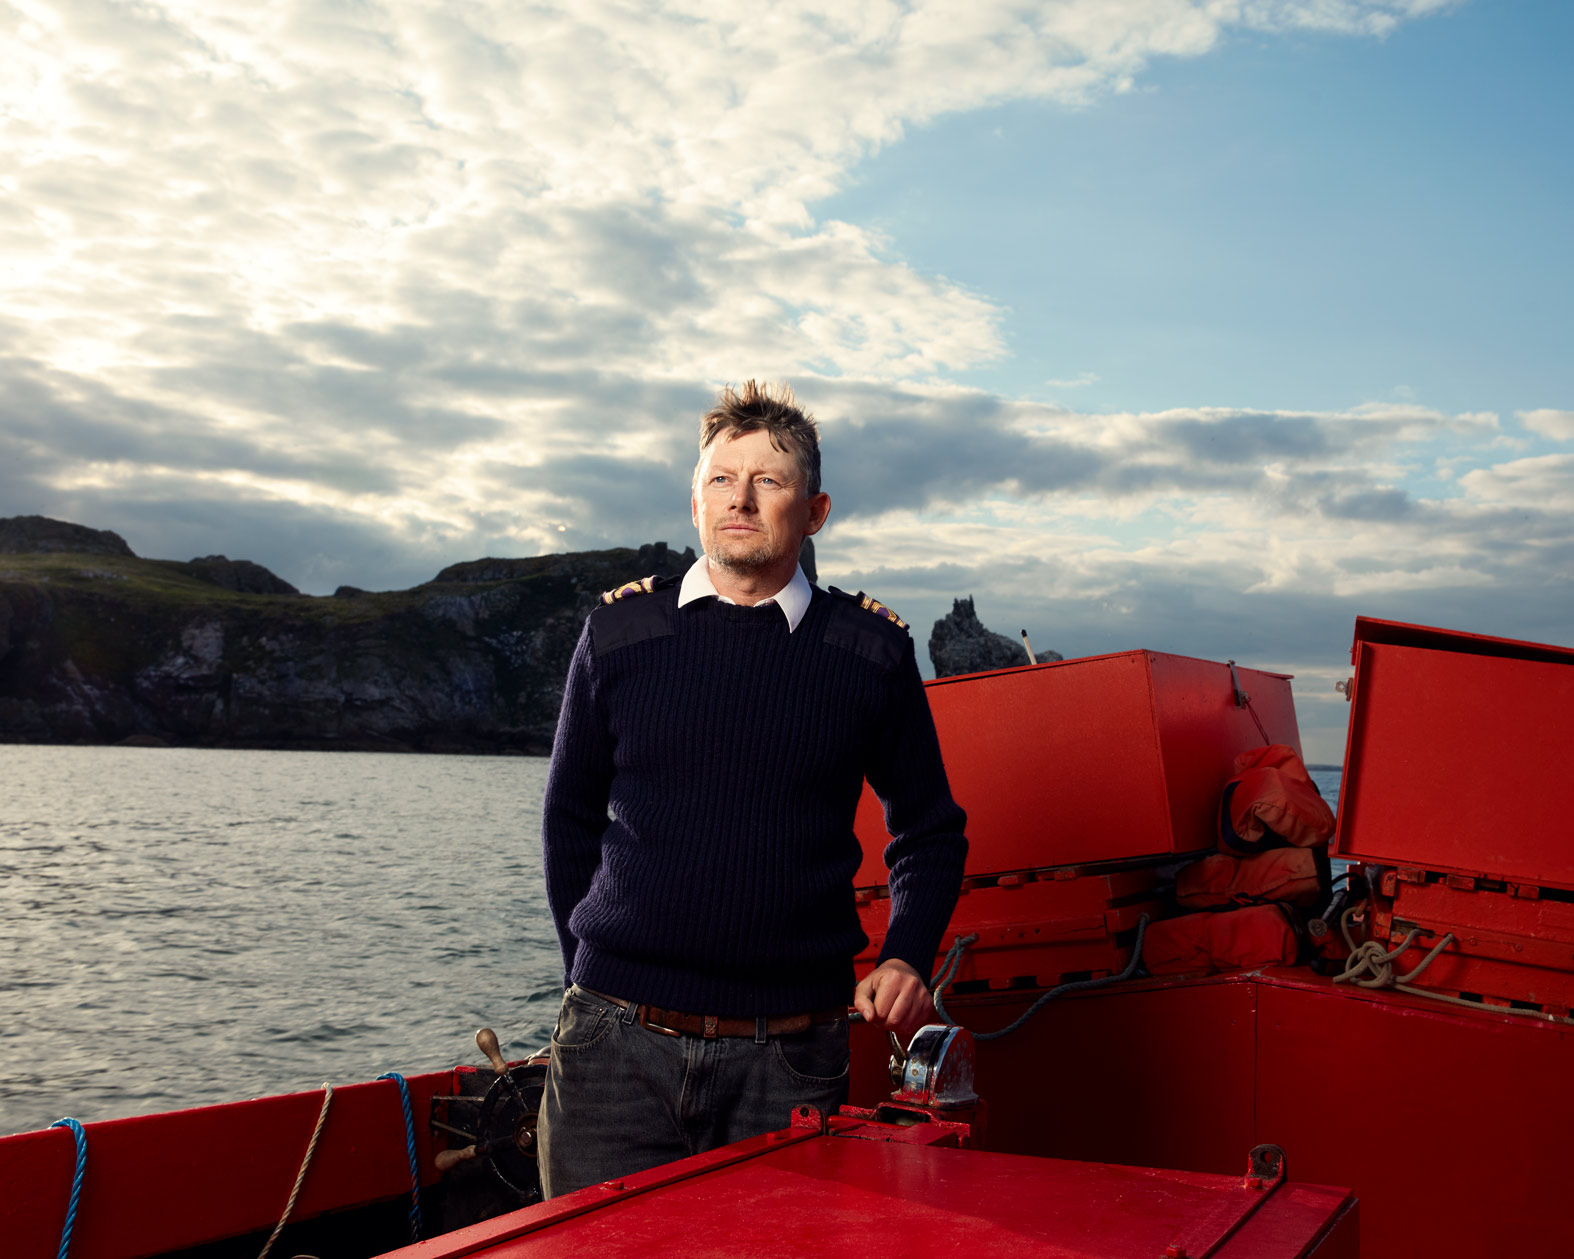 storytelling photography of an irish ferryman and sailor